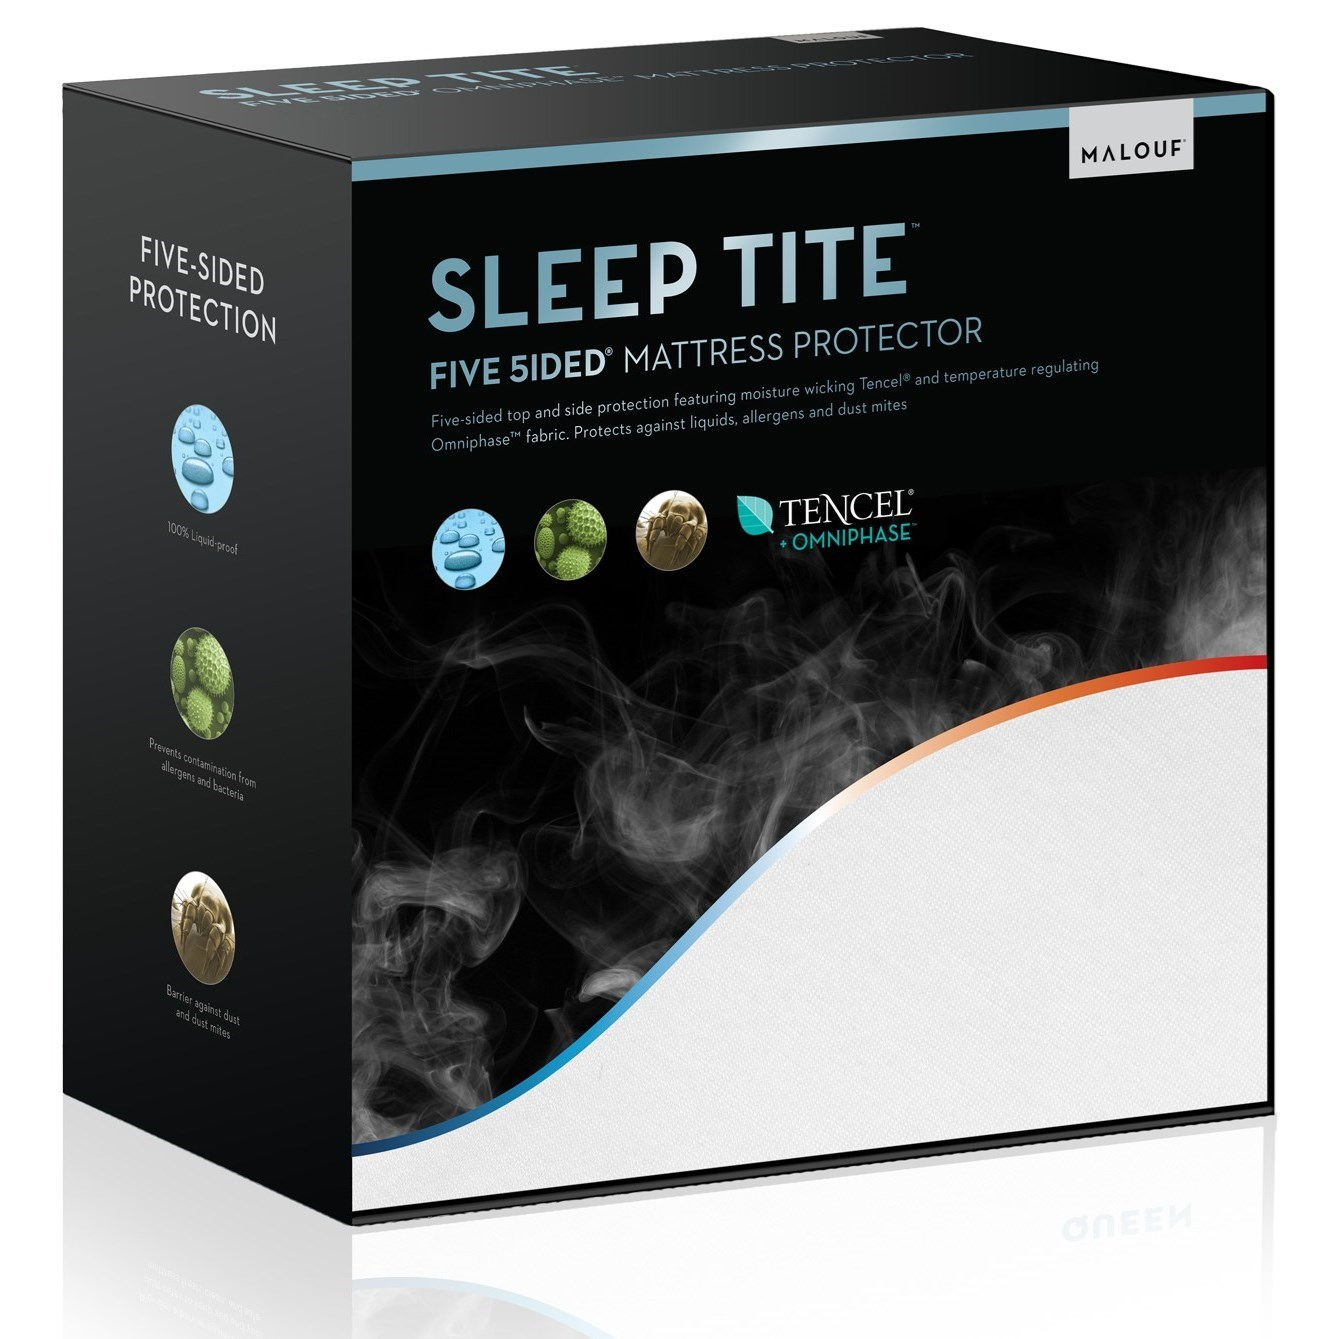 Malouf Five 5ided Omniphase Twin XL Five 5ided Mattress Protector - Item Number: SLOTTX5P